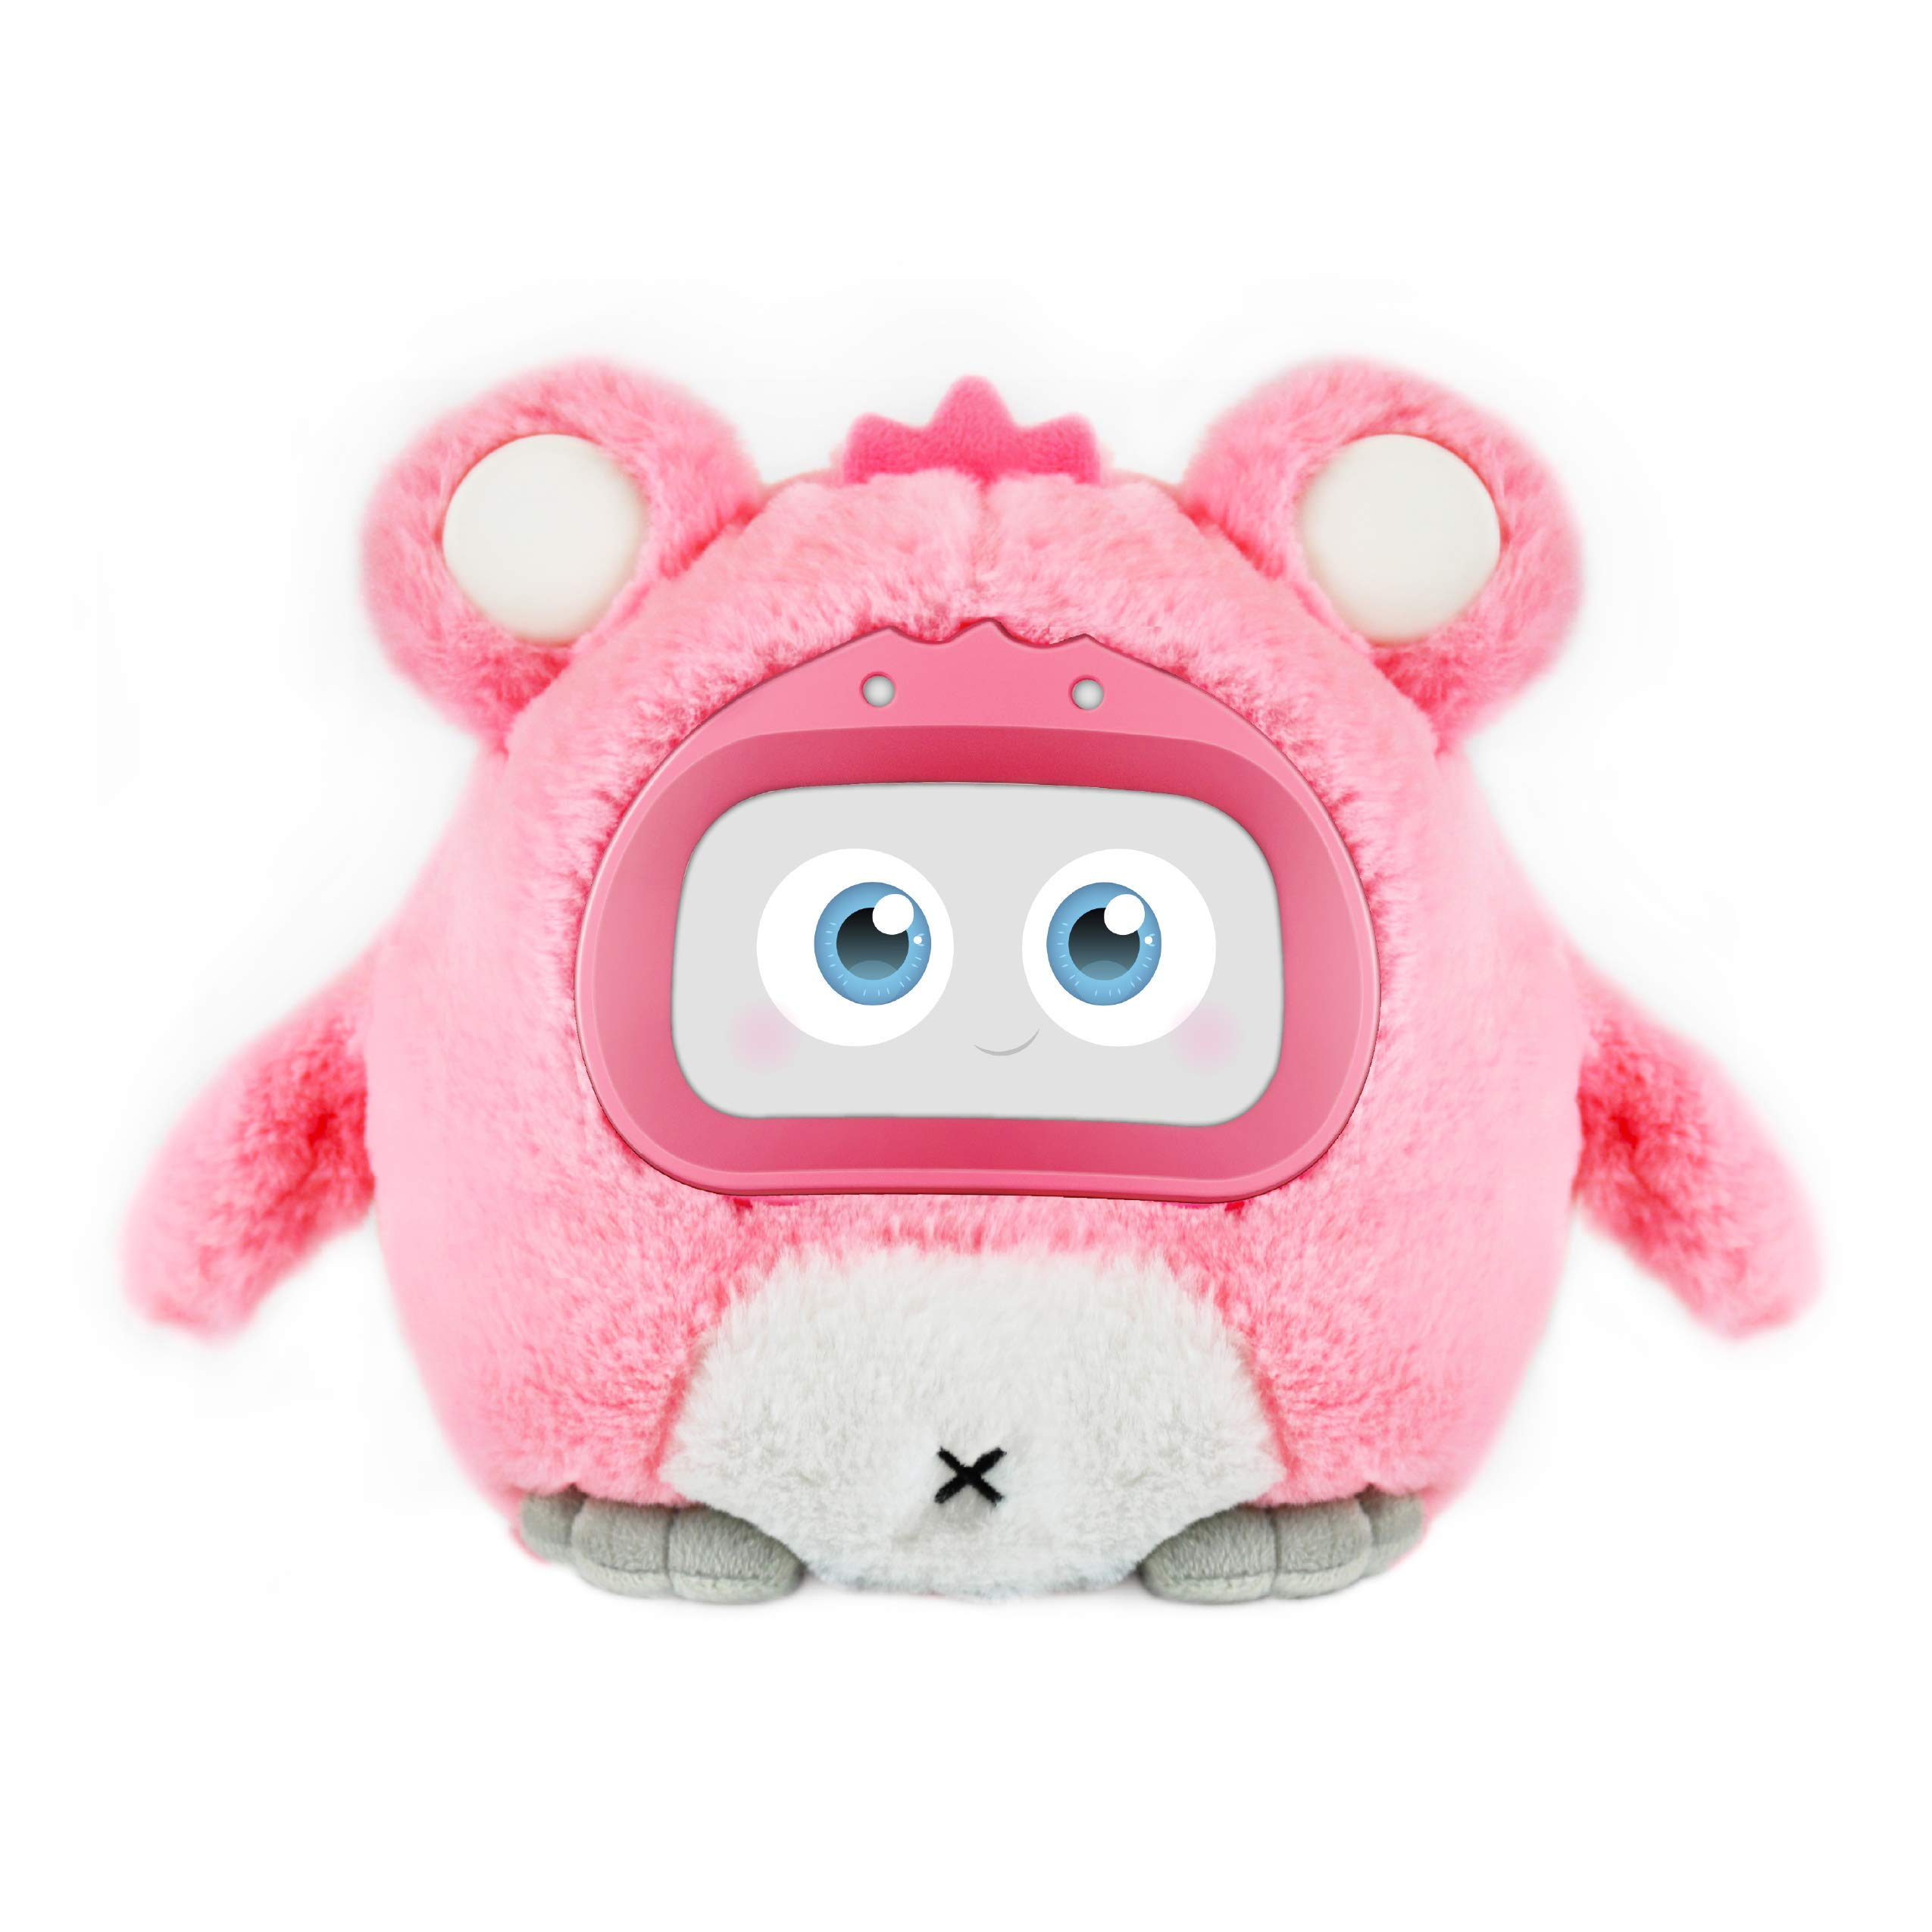 WOOBO Strawberry Sundae - Interactive Robot for Curious Kids